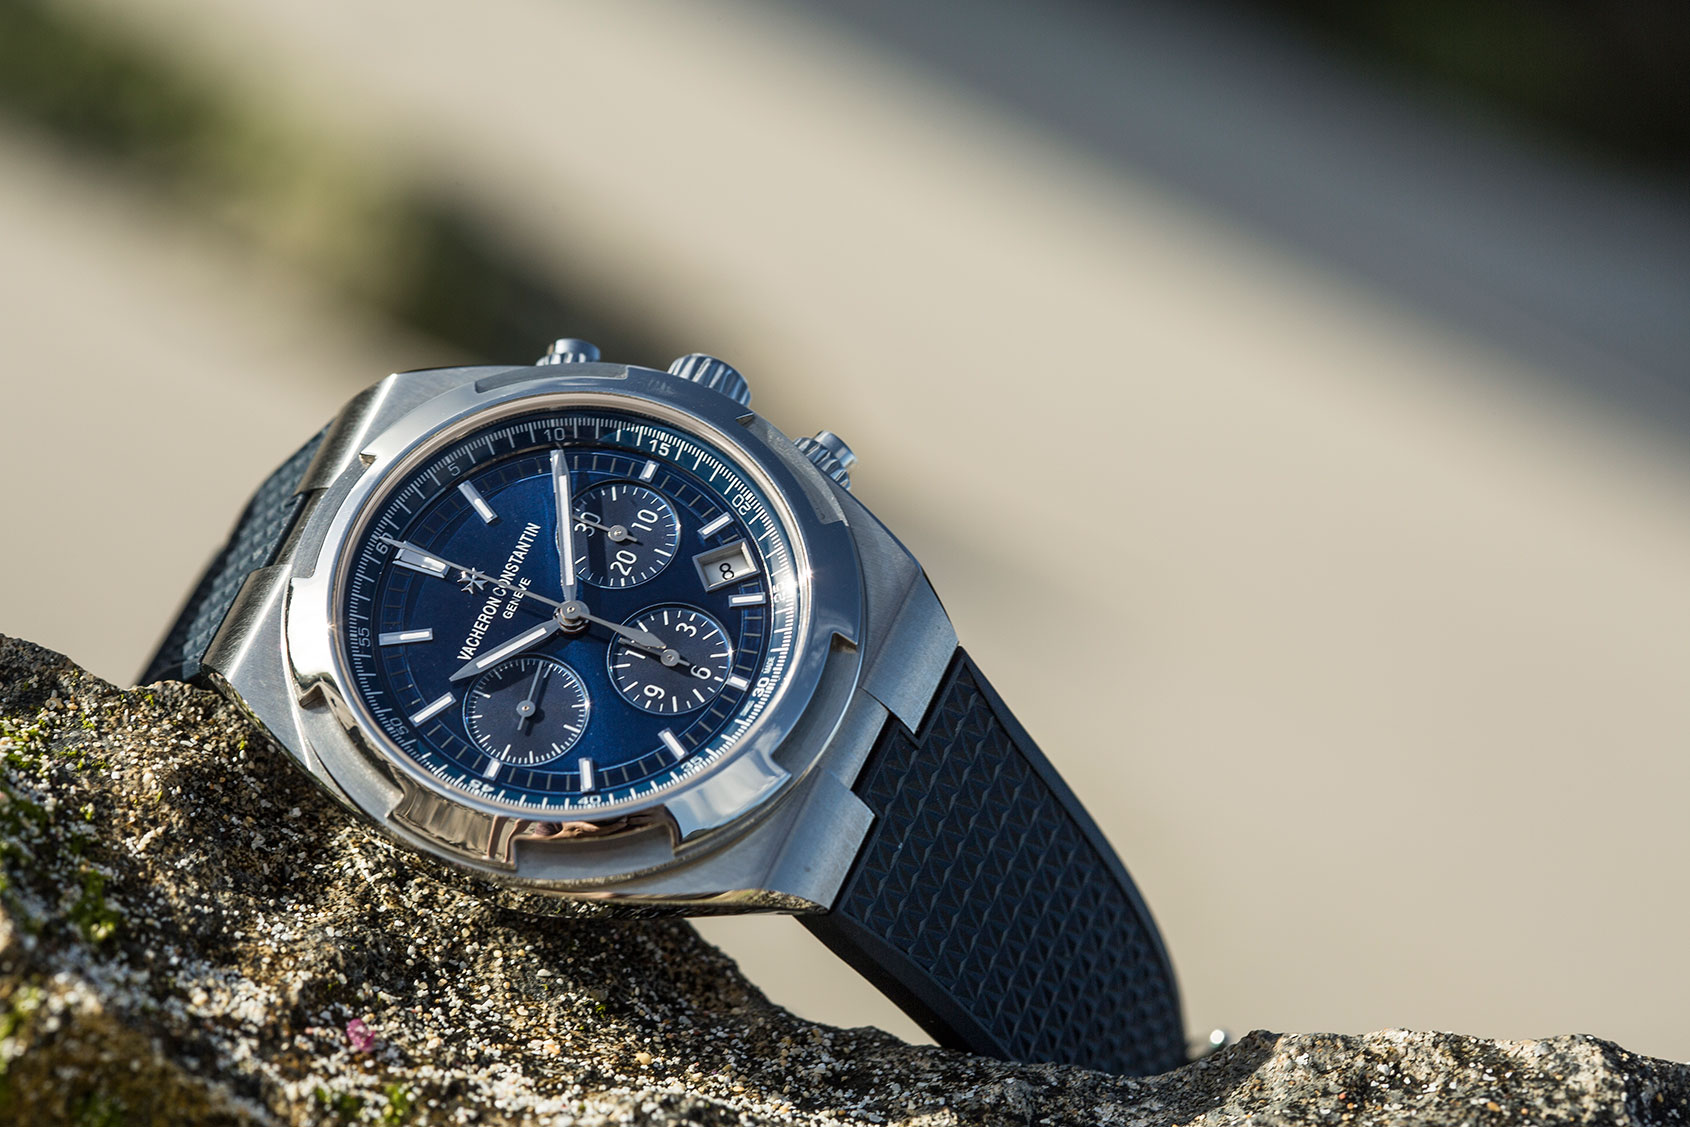 VIDEO: The Vacheron Constantin Overseas collection, the slow burn classics in our midst